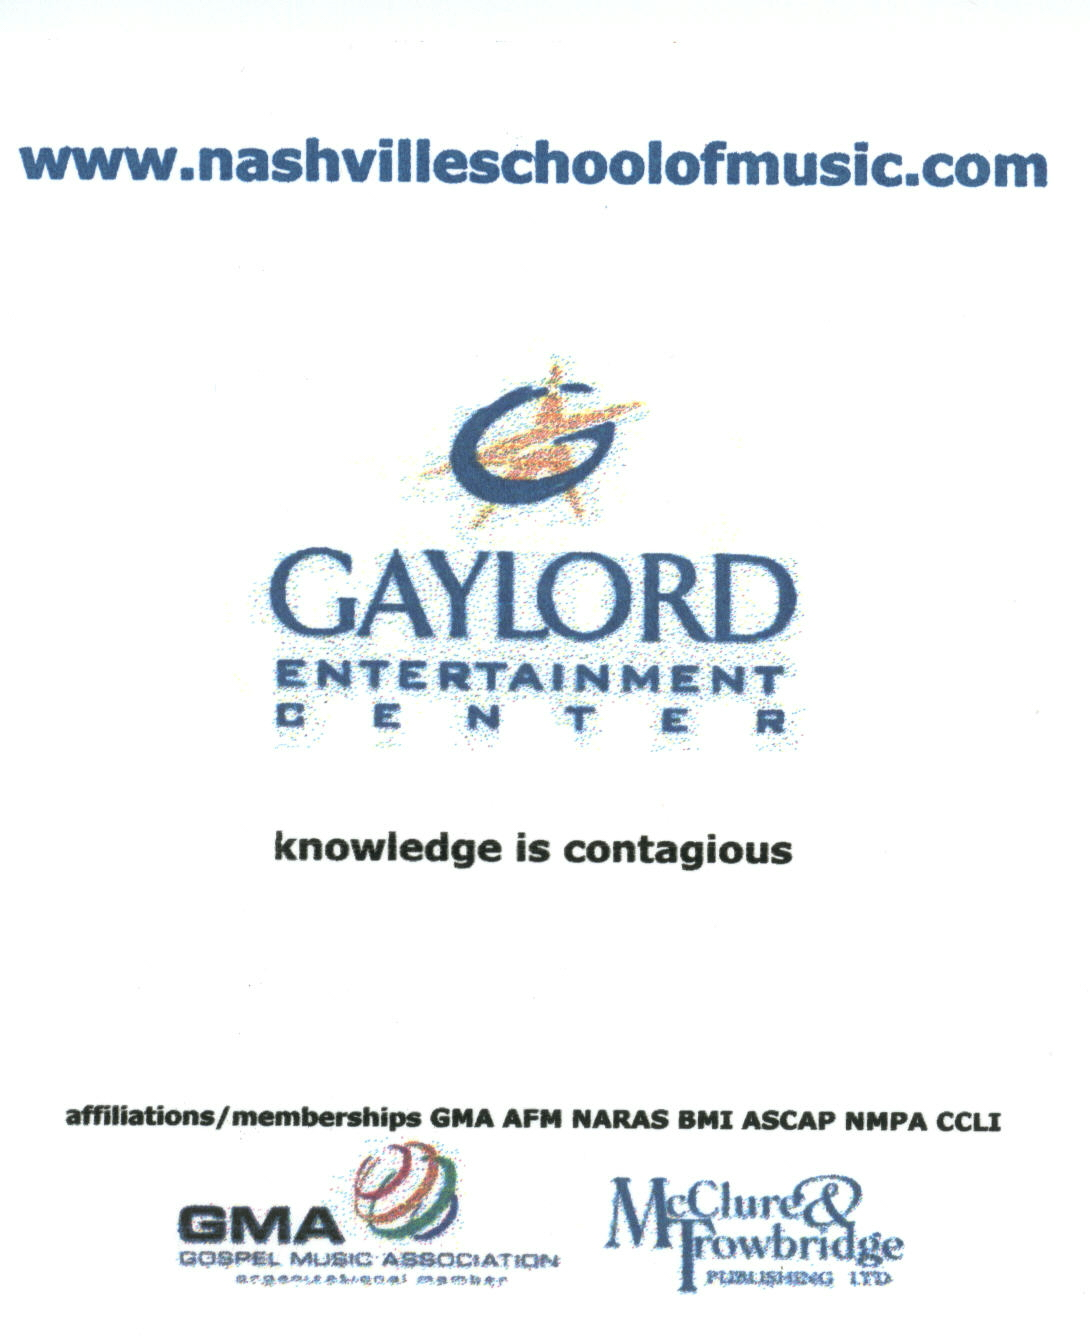 Nashville School of Music 2007 ad in Sing Out!, No Depression, GMA